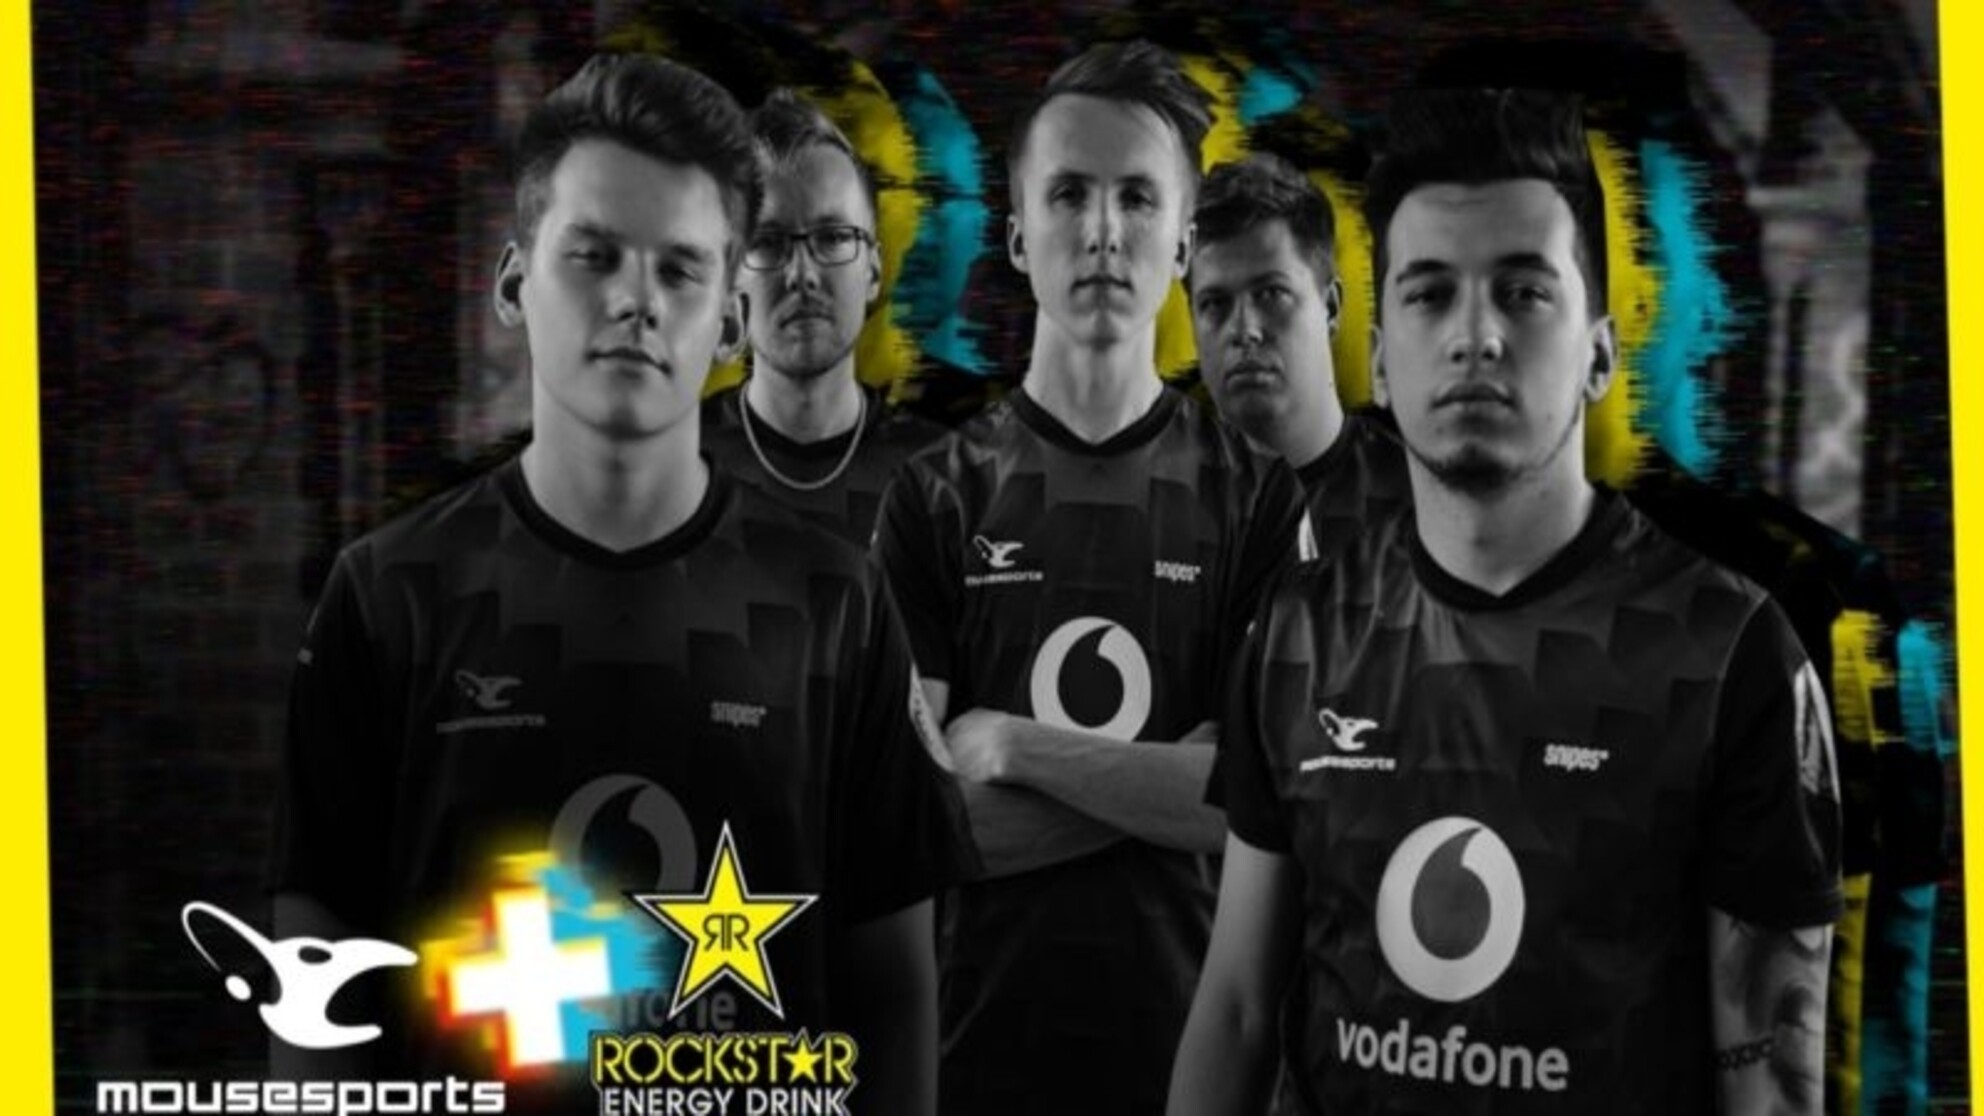 mousesports partners with Rockstar Energy